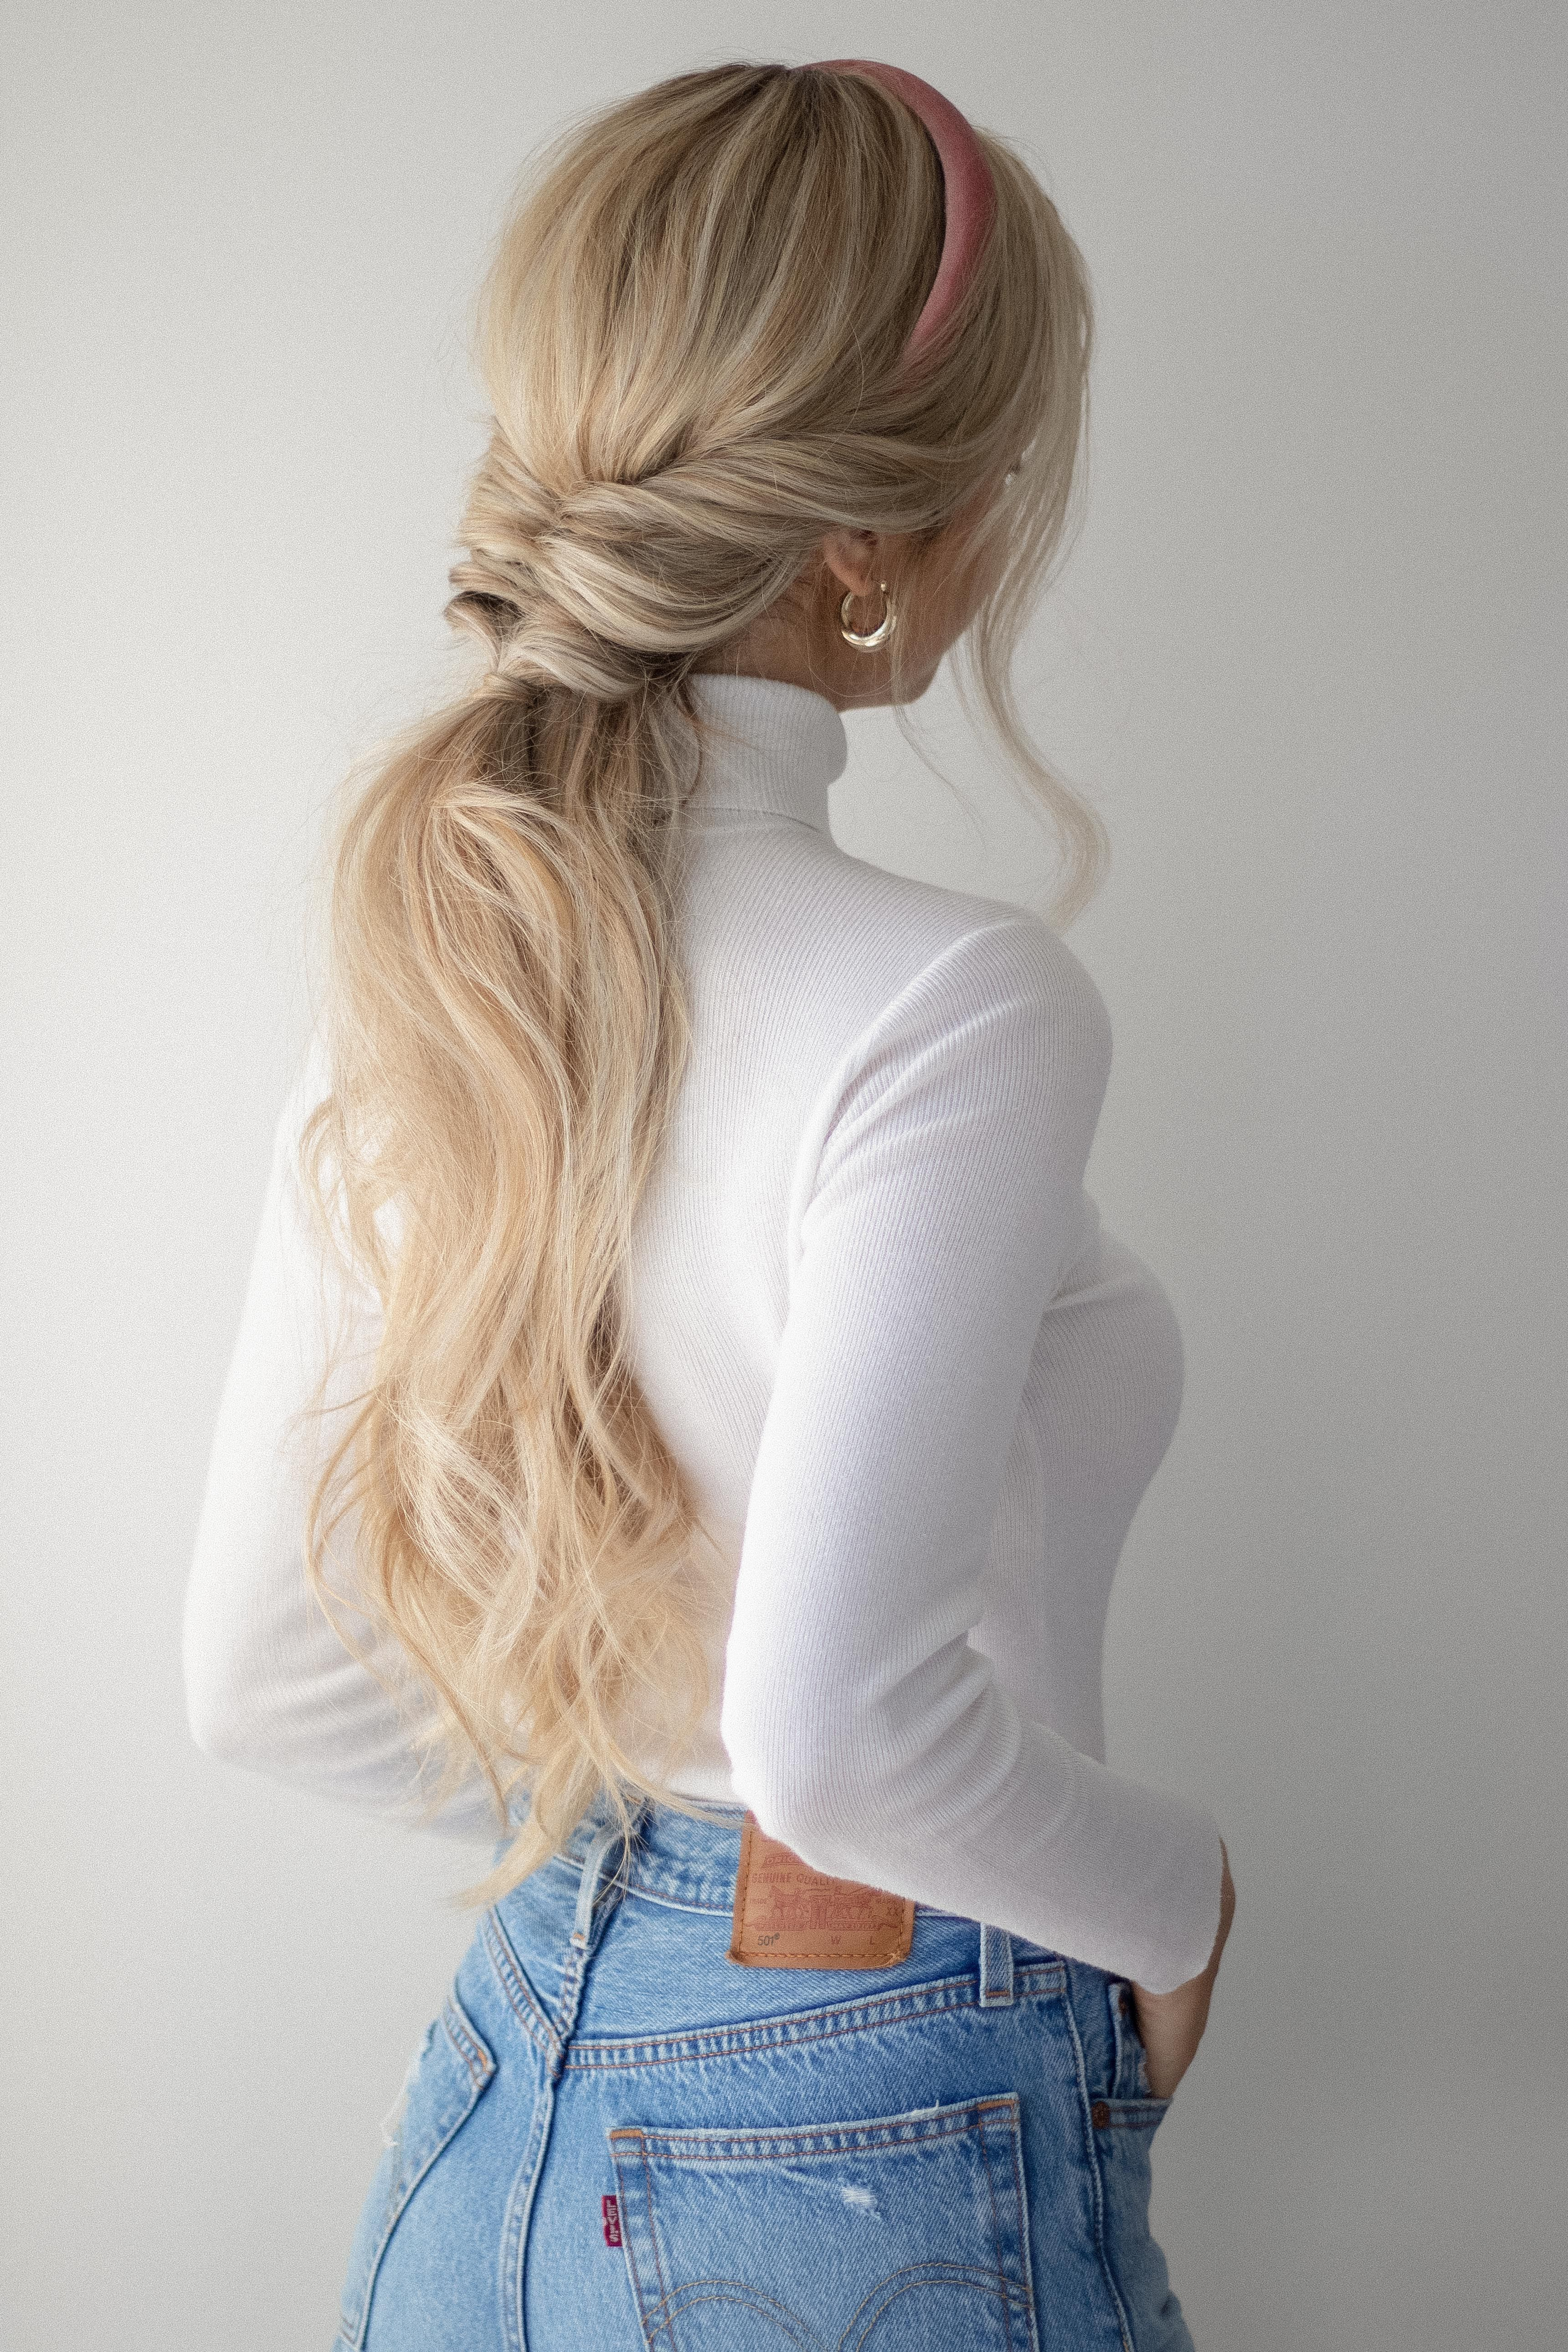 3 EASY FALL HAIRSTYLES | Perfect for medium and long hair